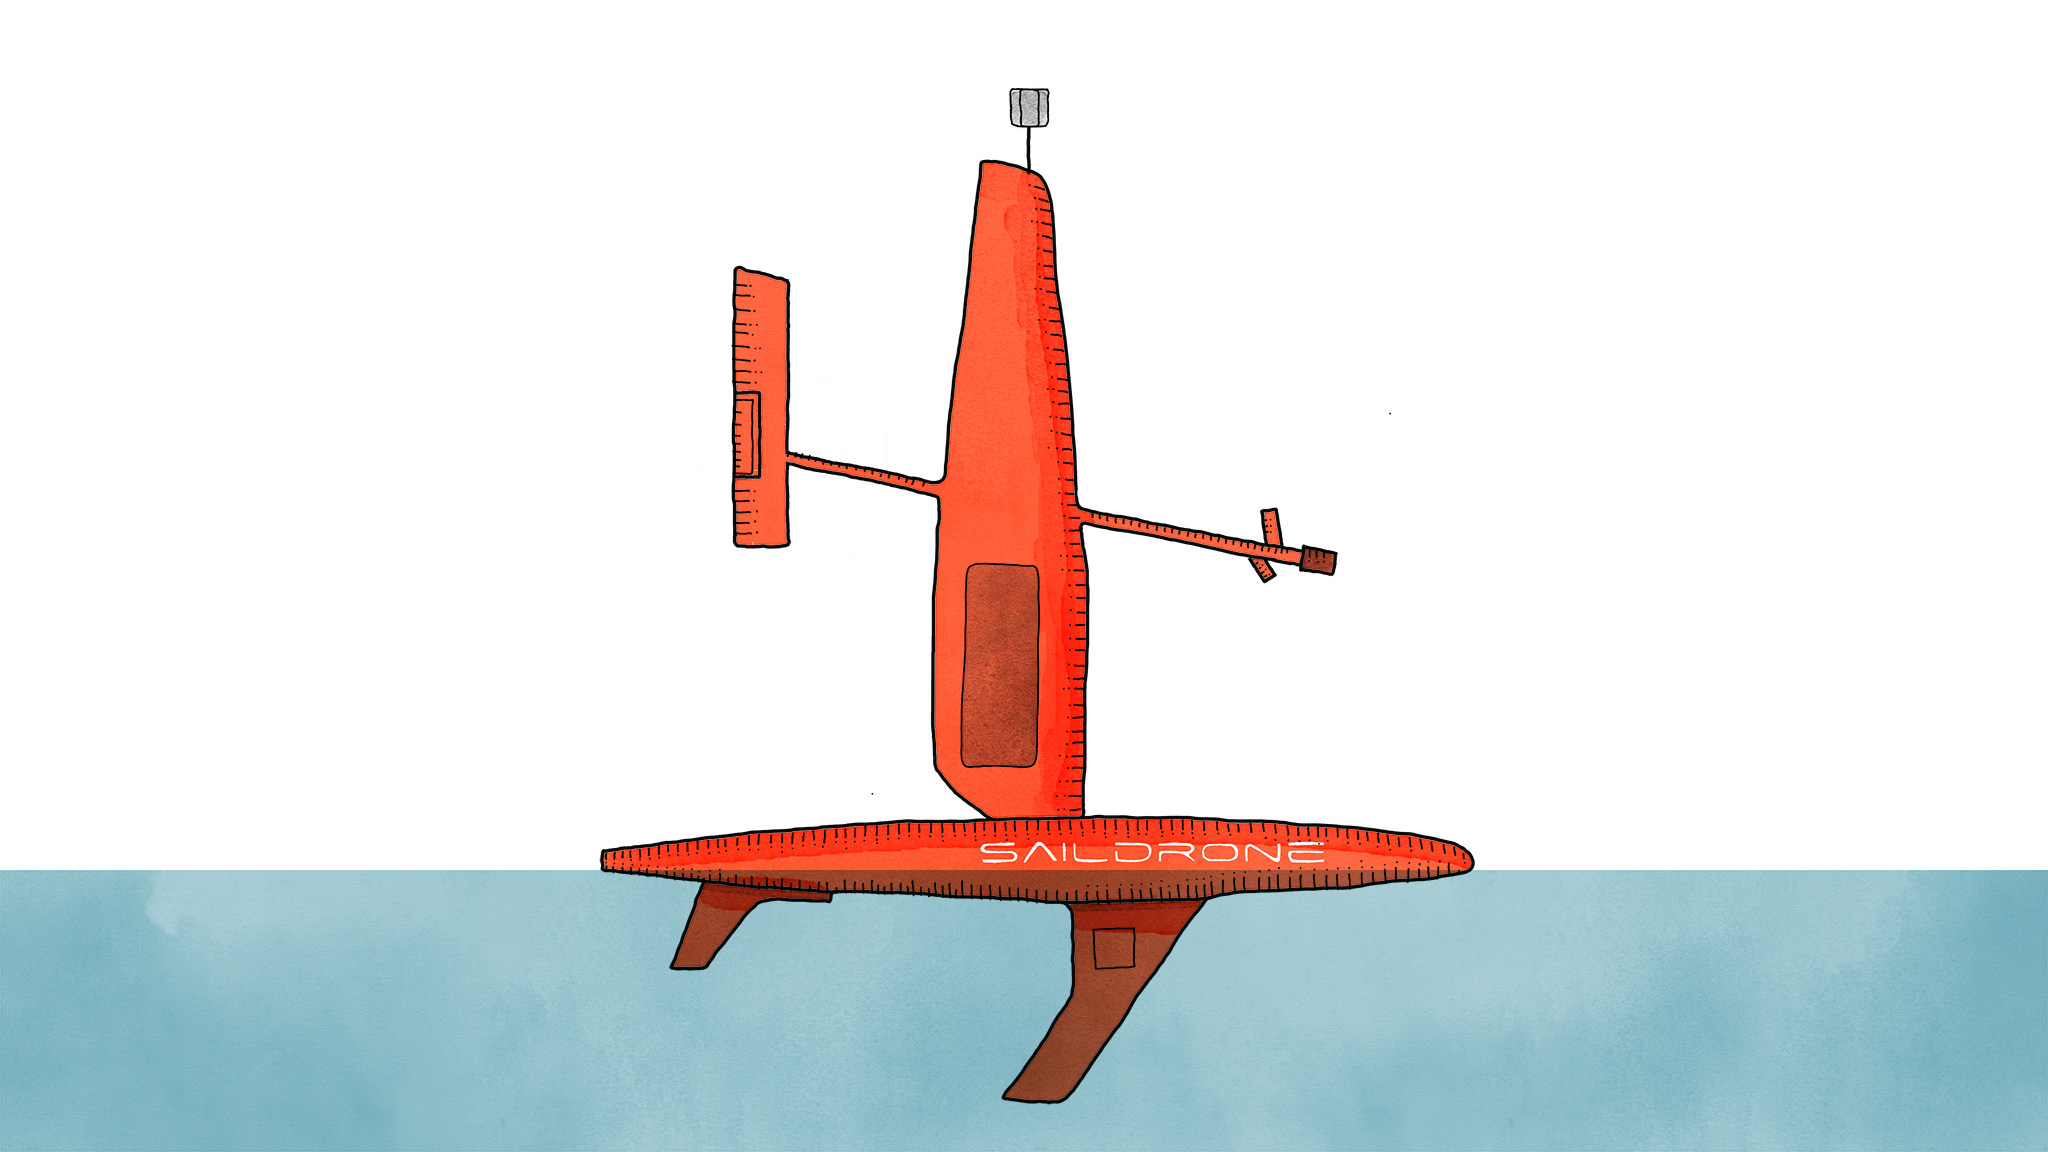 Saildrone: Antarctic Circumnavigation – STEM Curriculum